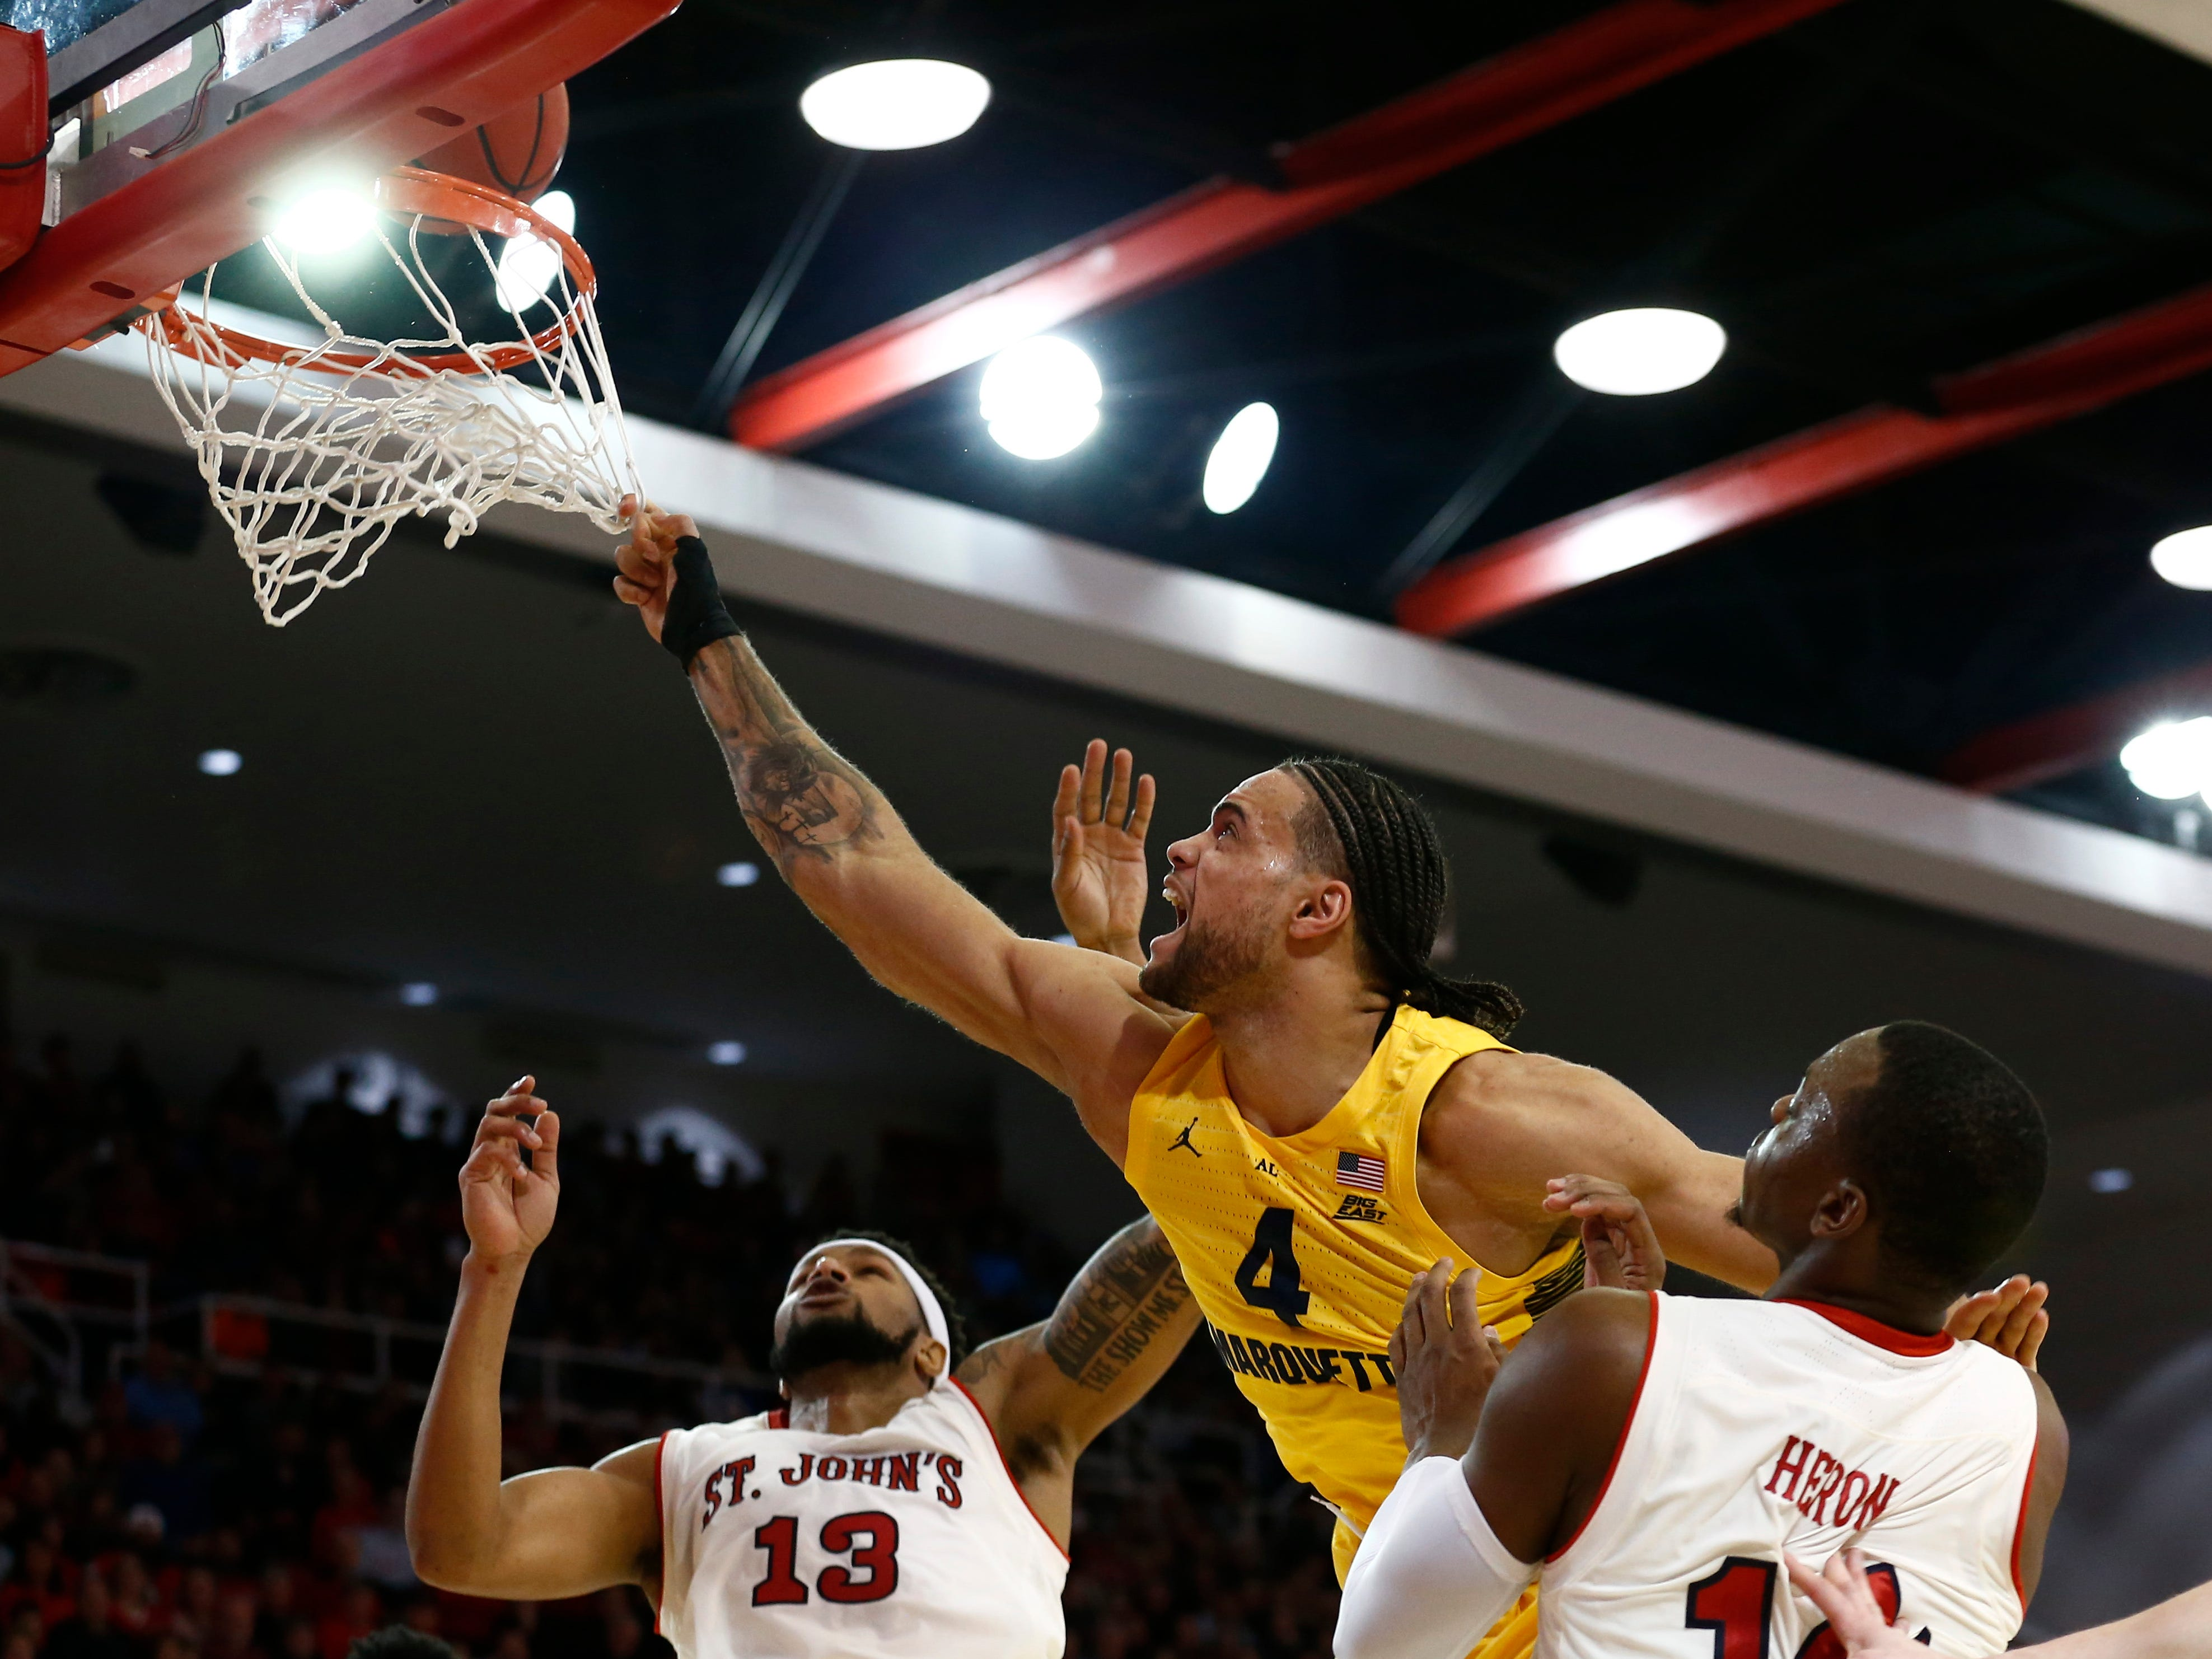 Jan 1, 2019; Queens, NY, USA; Marquette Golden Eagles forward Theo John (4) puts up a shot against St. John's Red Storm forward Marvin Clark II (13) and guard Mustapha Heron (14) in the first half at Carnesecca Arena. Mandatory Credit: Nicole Sweet-USA TODAY Sports